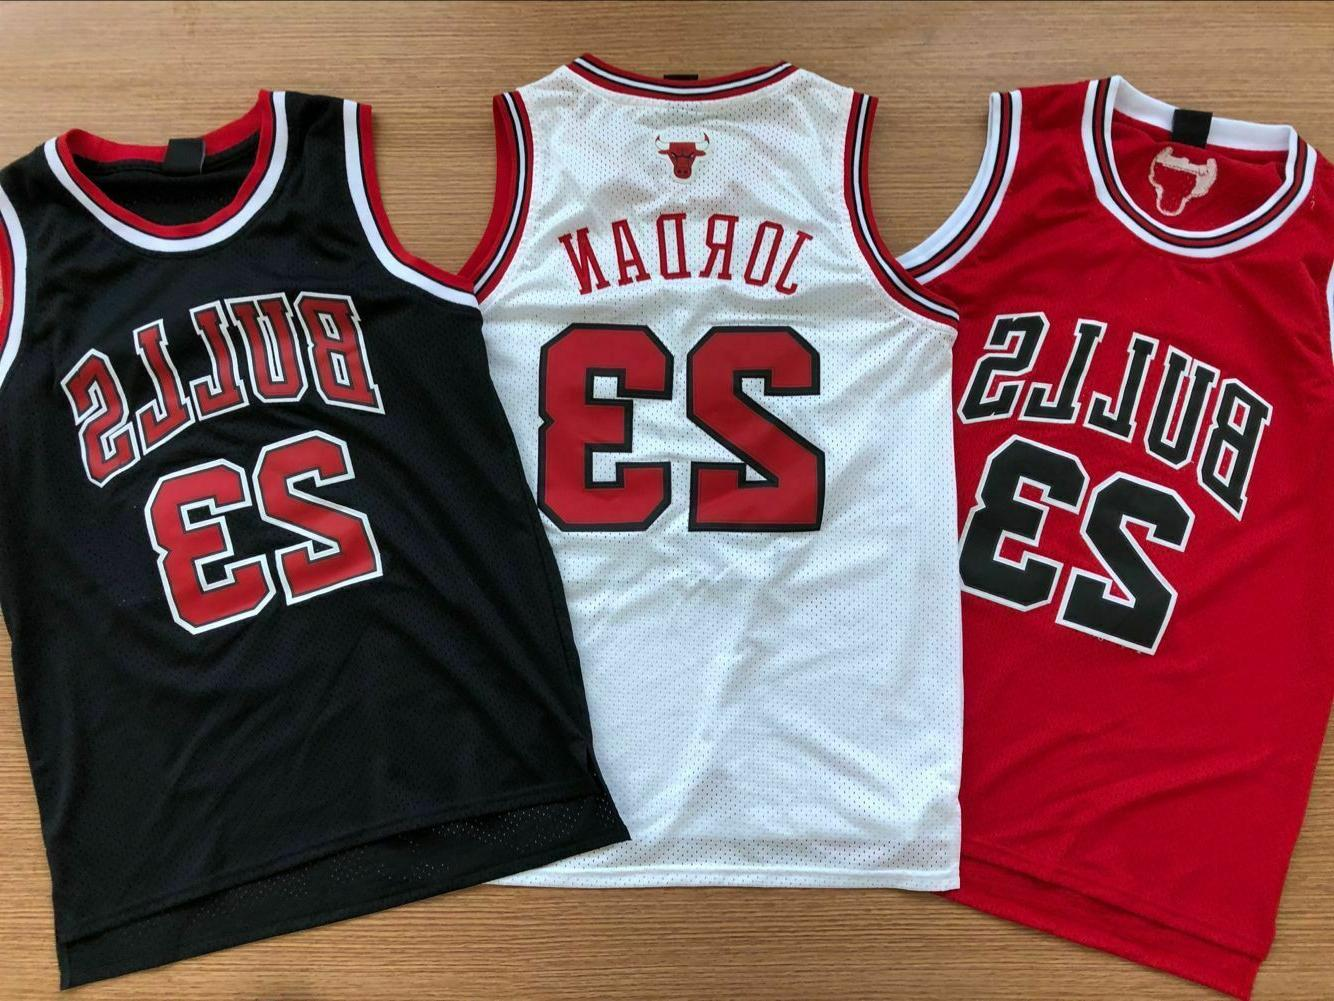 throwback swingman jordan 23 classic basketball jersey